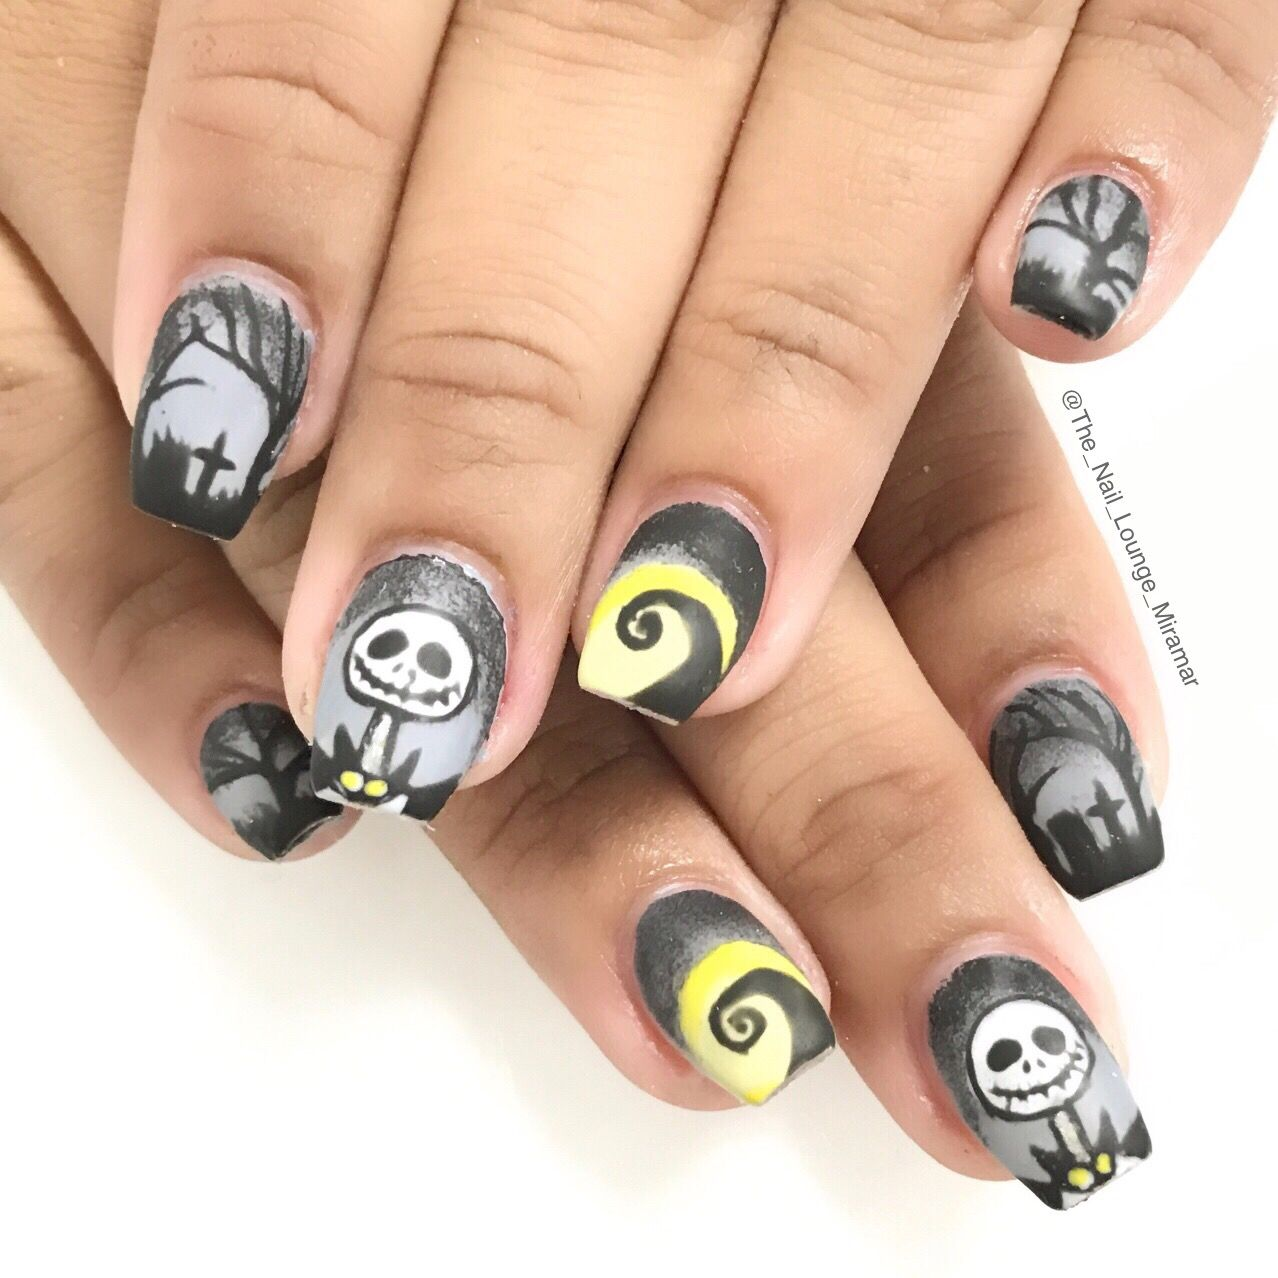 Nail Art Ideas » One Stroke Nail Art Book - Pictures of Nail Art ...